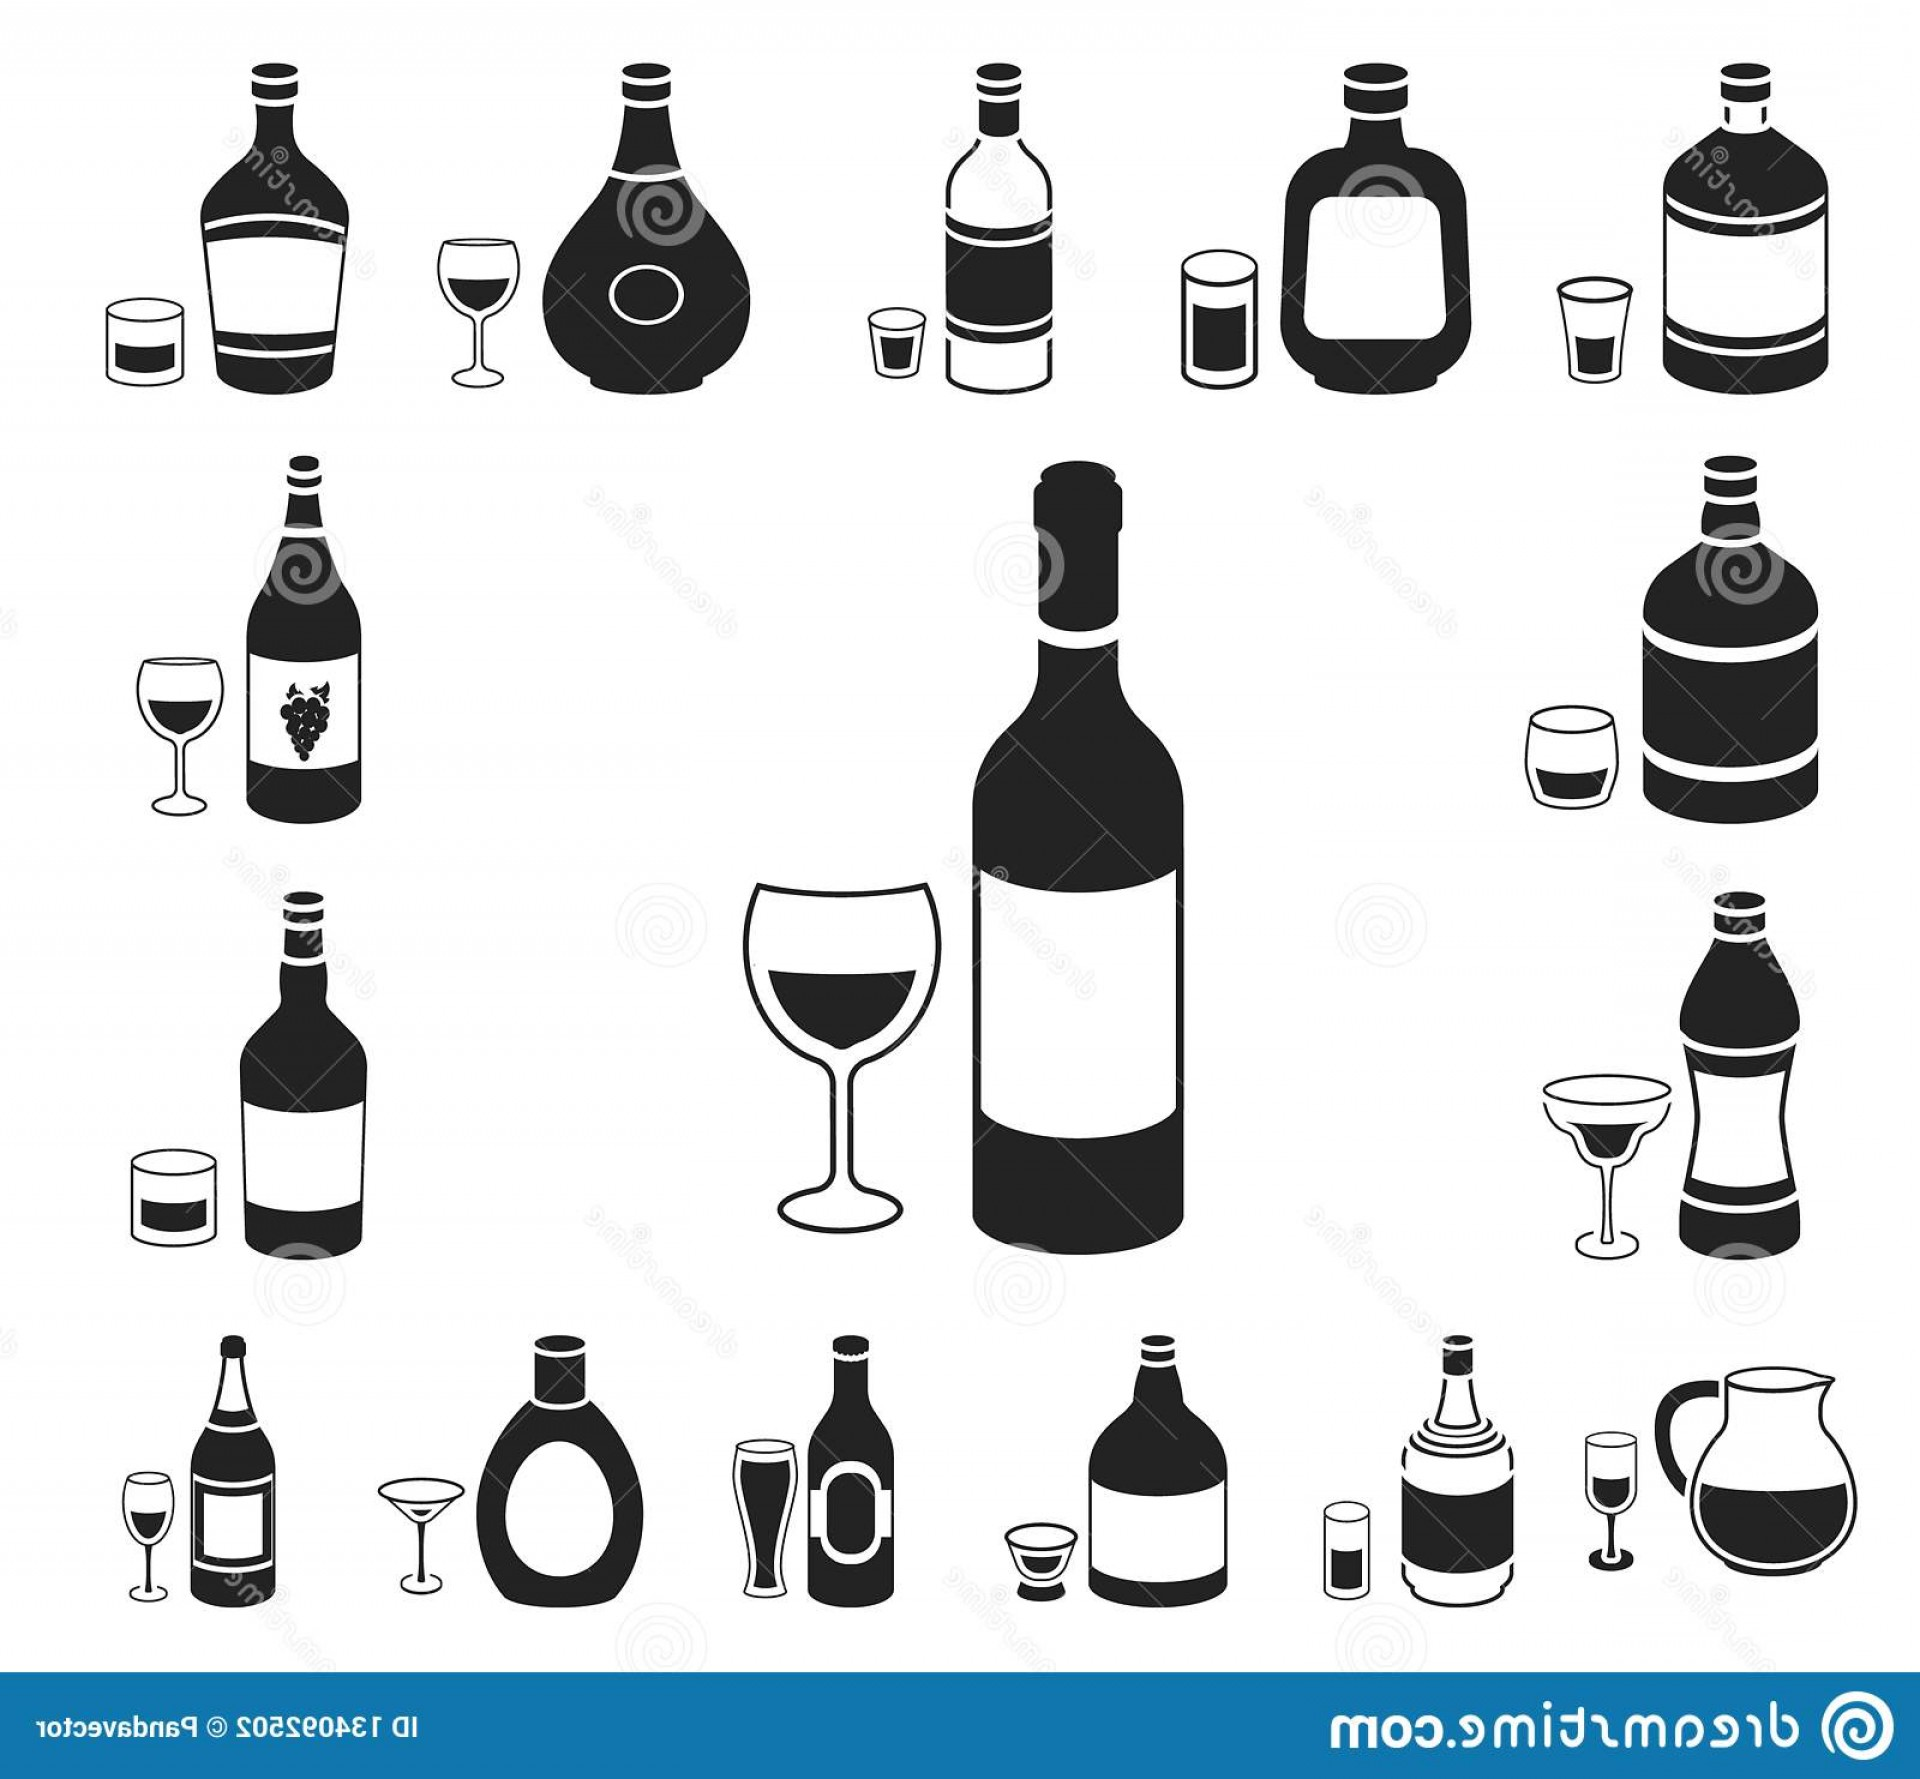 Booze Bottle Vector: Types Alcohol Black Icons Set Collection Design Alcohol Bottles Vector Symbol Stock Illustration Types Alcohol Image